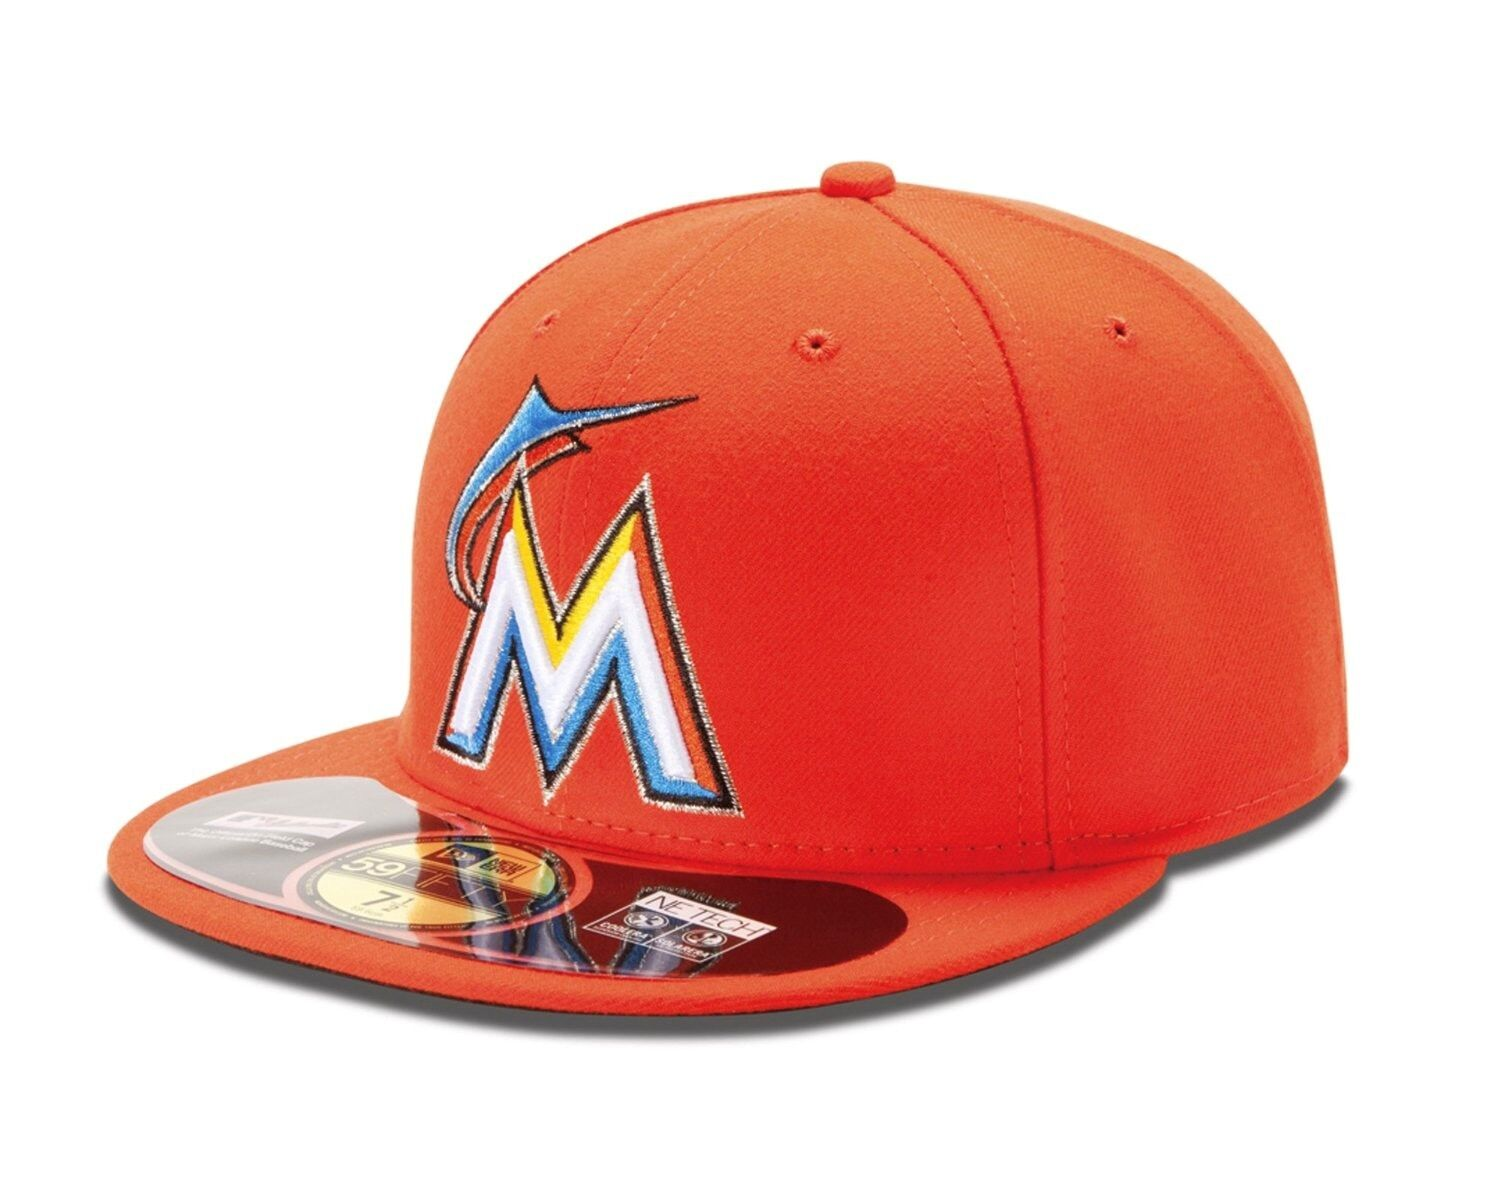 classic threads miami marlins page 4 of 4 baseball